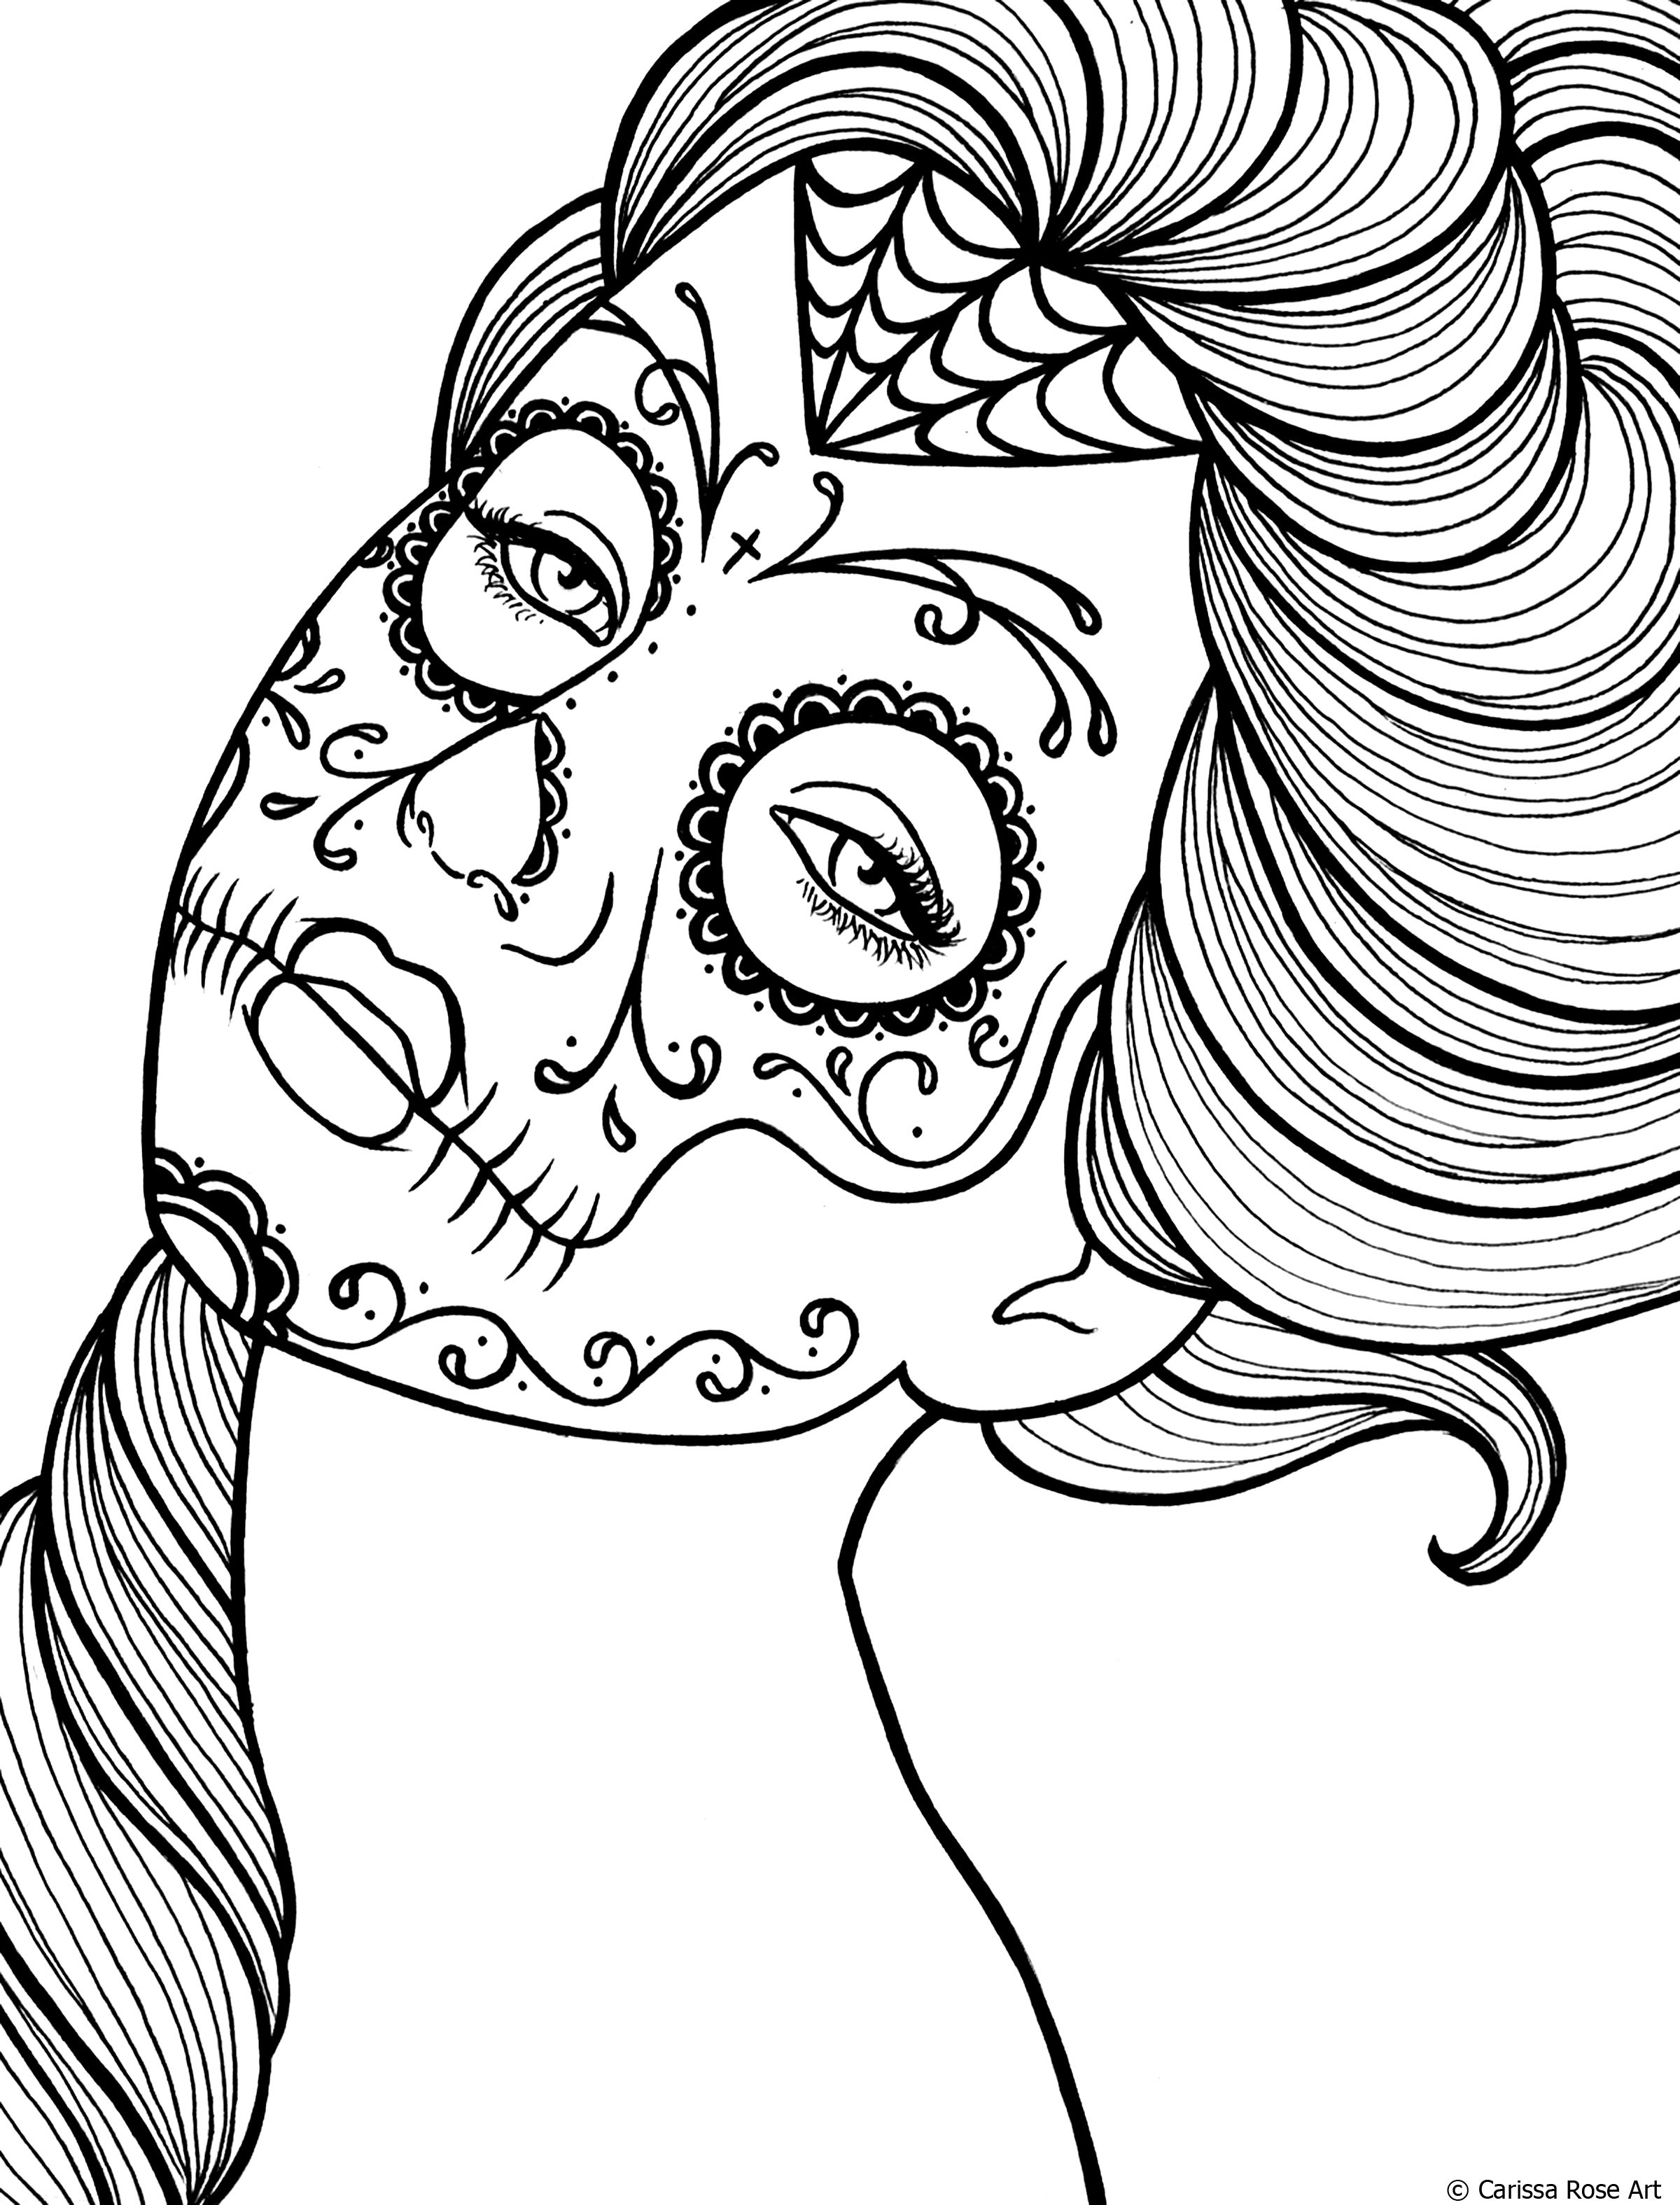 Free Printable Day Of The Dead Coloring Book Page Skull Coloring Pages Rose Coloring Pages Coloring Pages